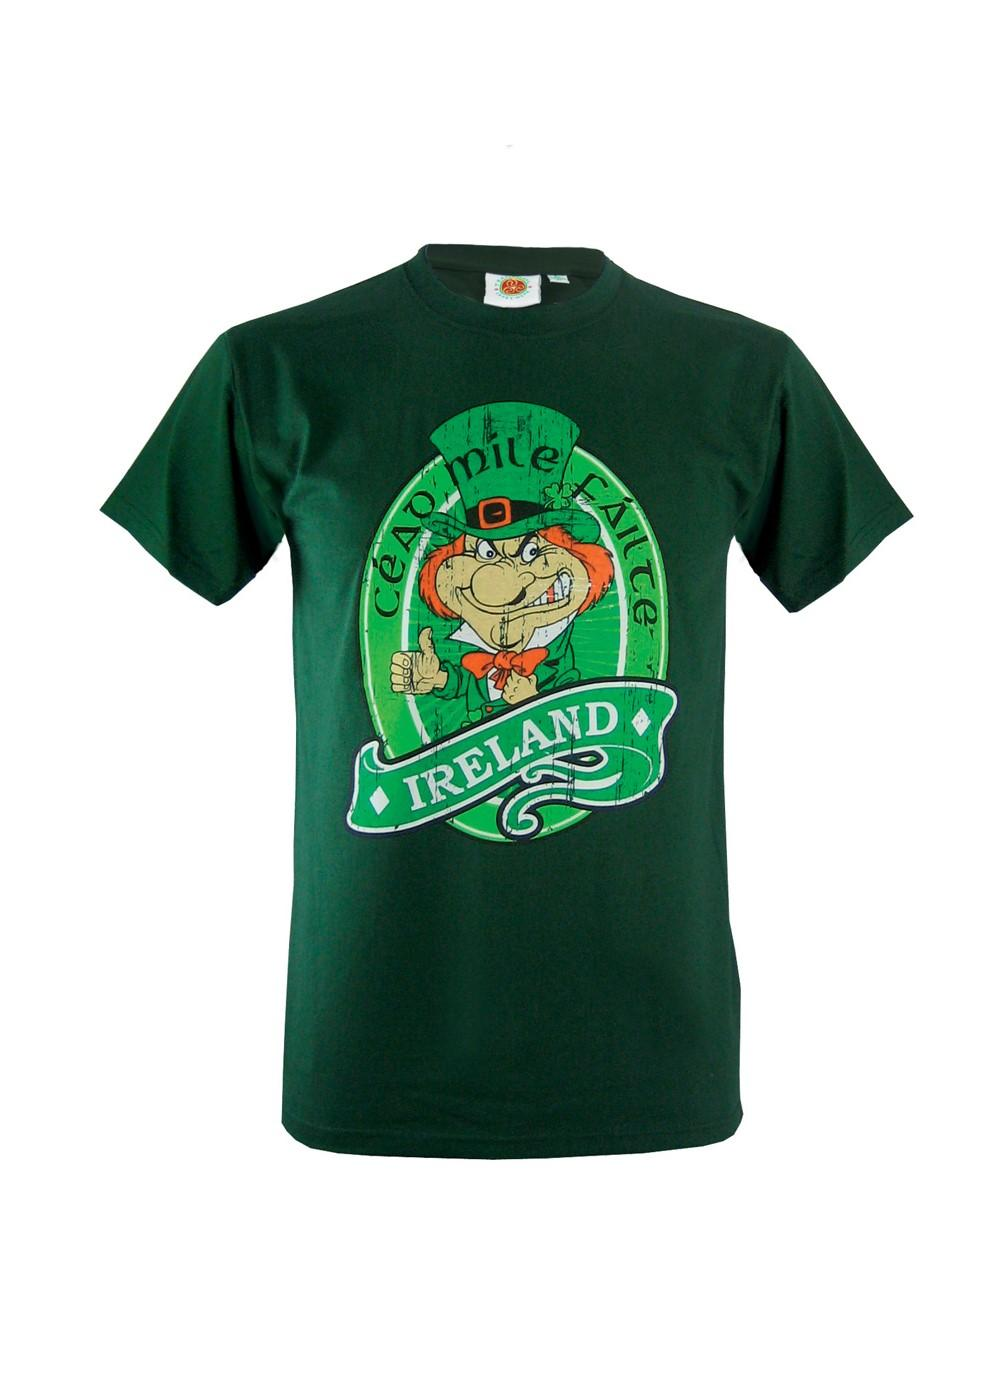 Cead mile failte t shirt blarney for Miles t shirt shop